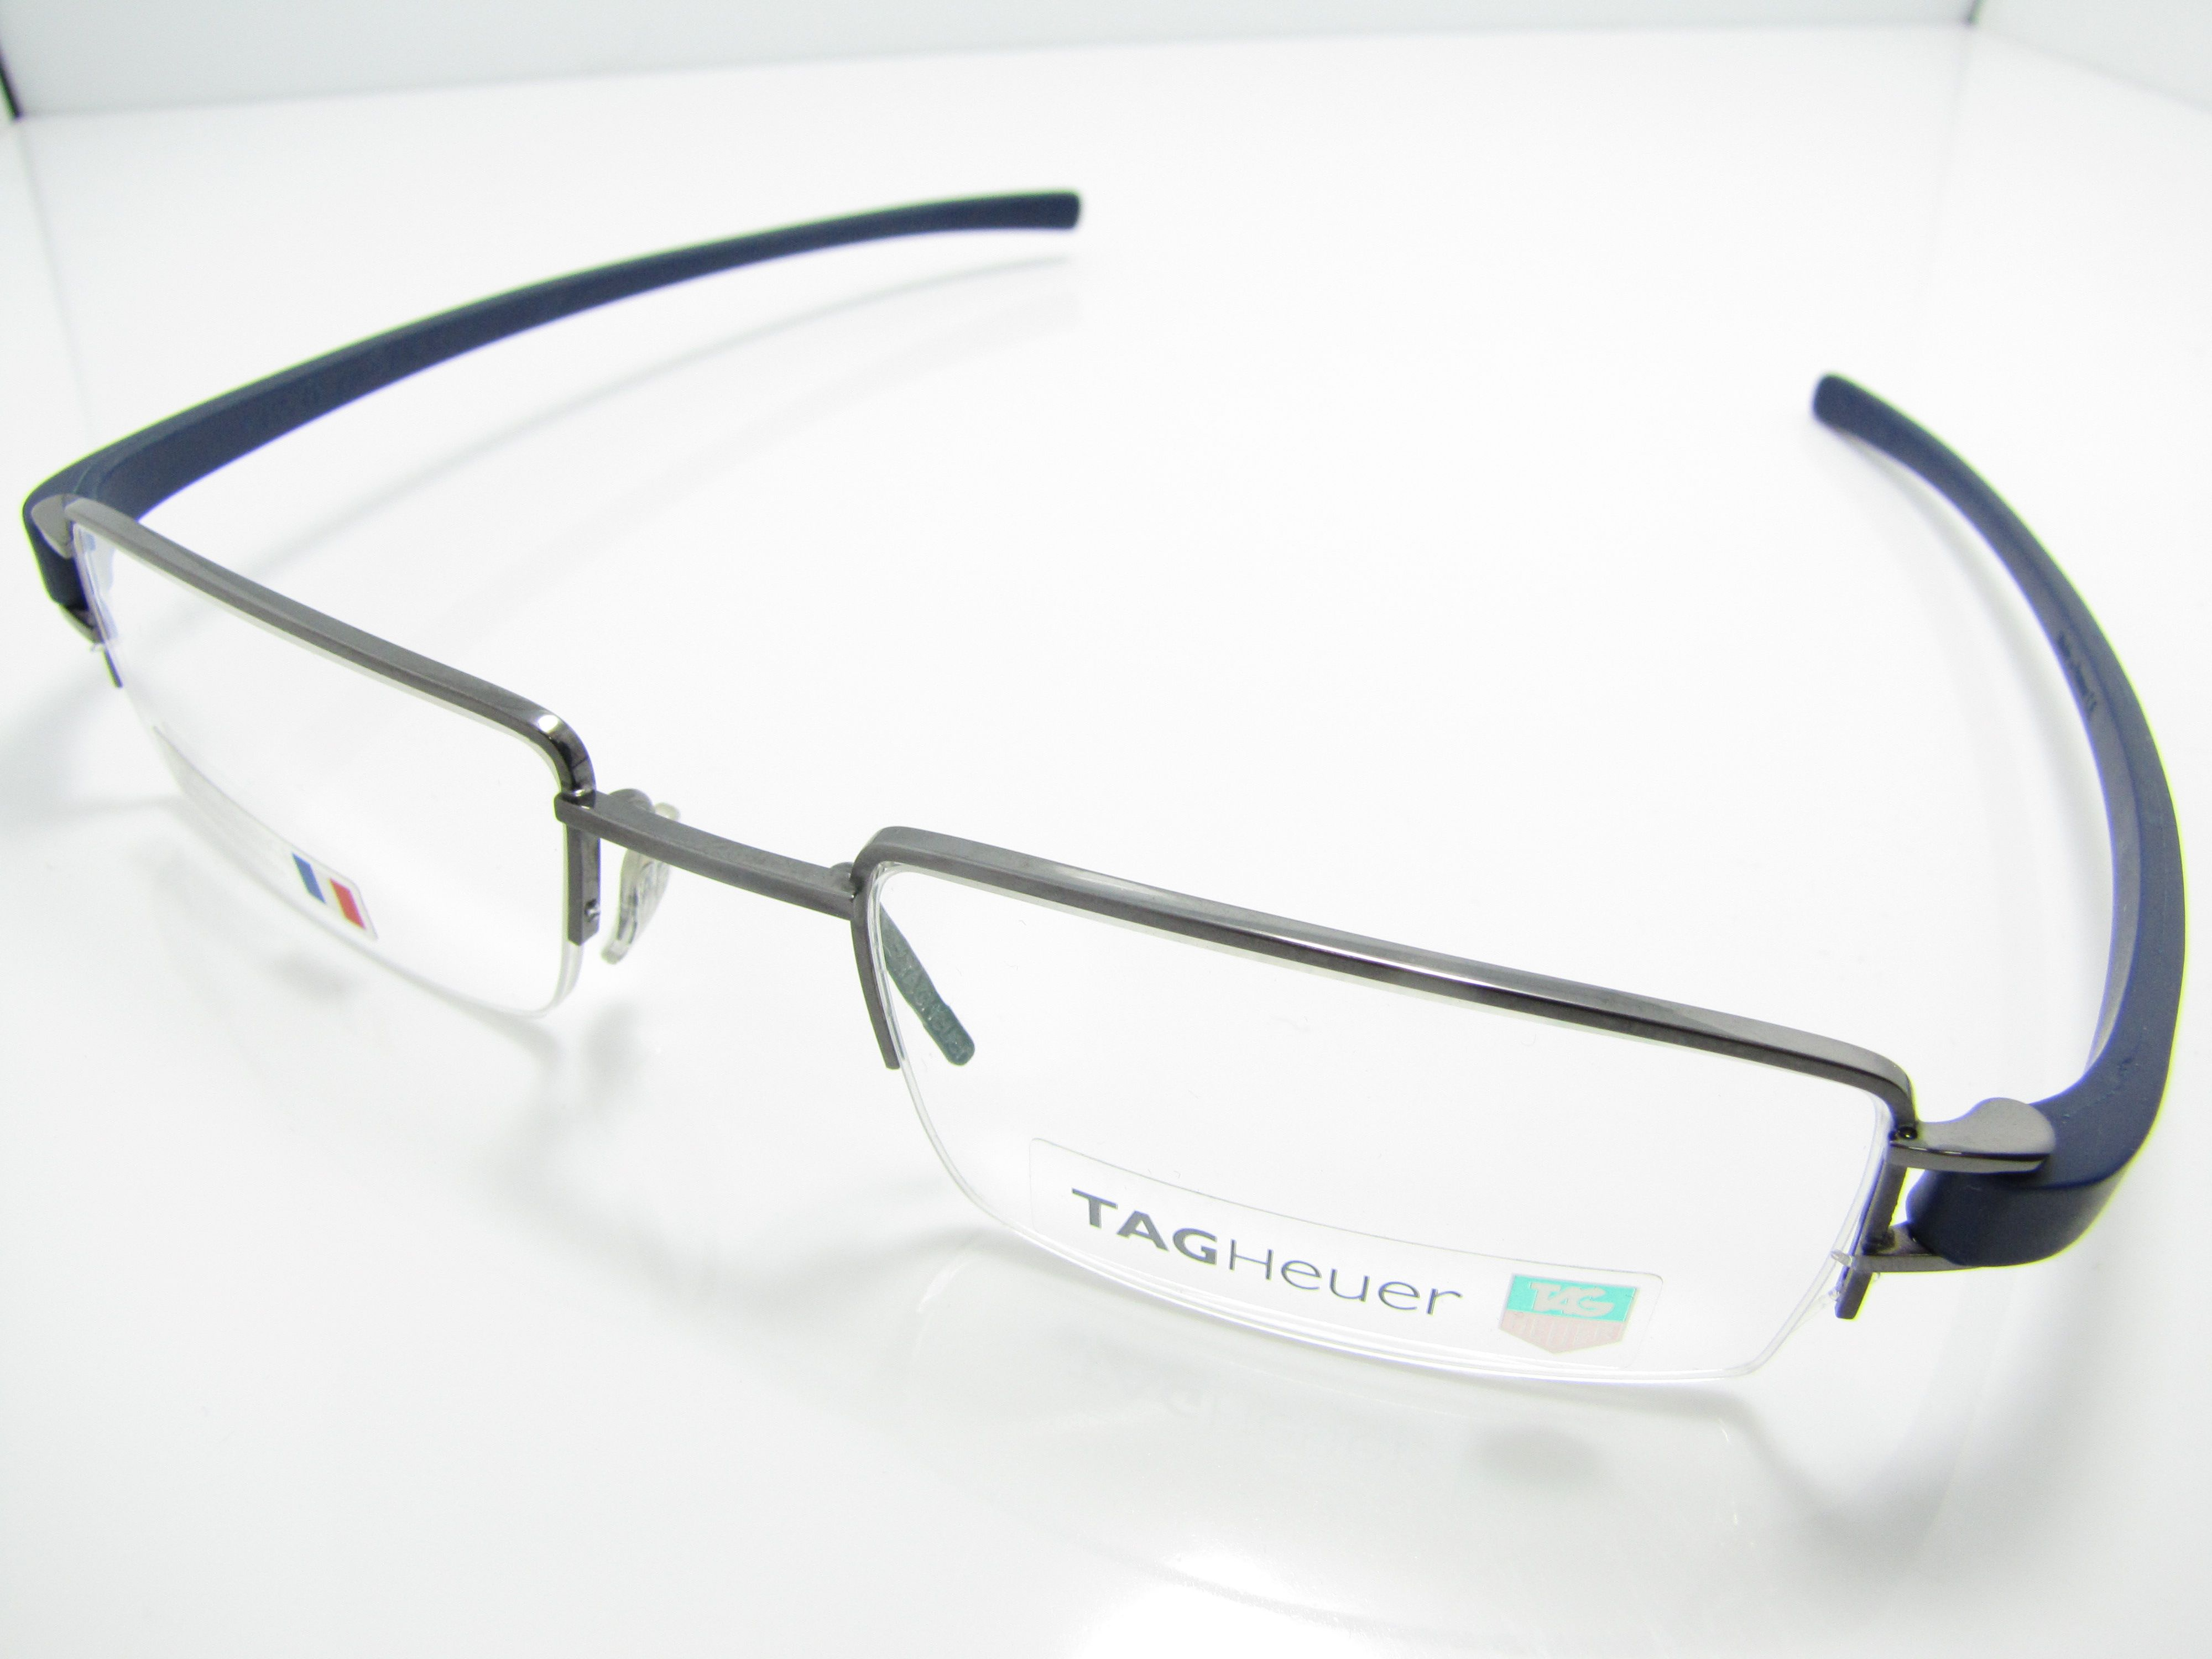 Eyeglass Frame Tags : Tag Heuer Eyeglasses New Eyewear Frames Optical Glasses ...